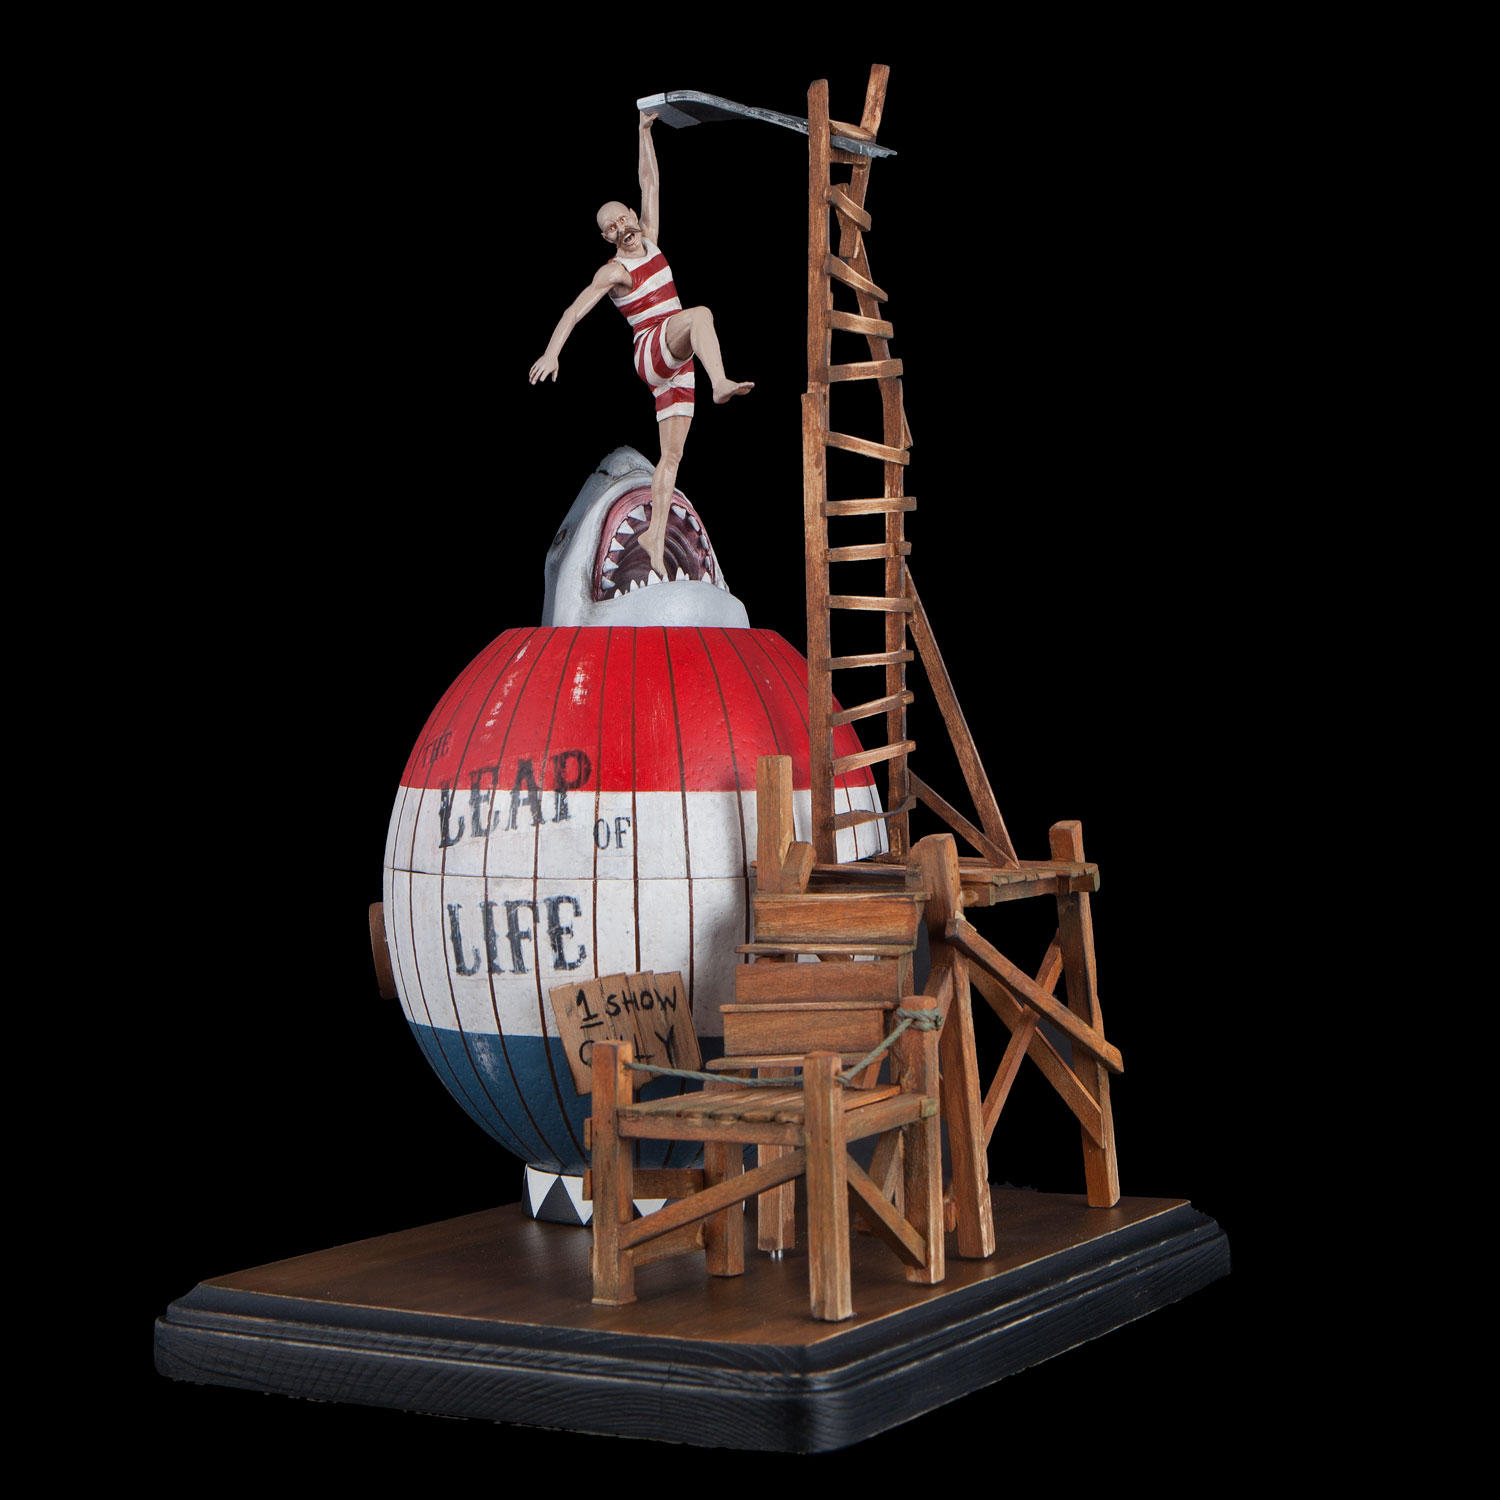 The Leap of Life . Digital Sculpting, 3-D Printing & Acrylic Paint